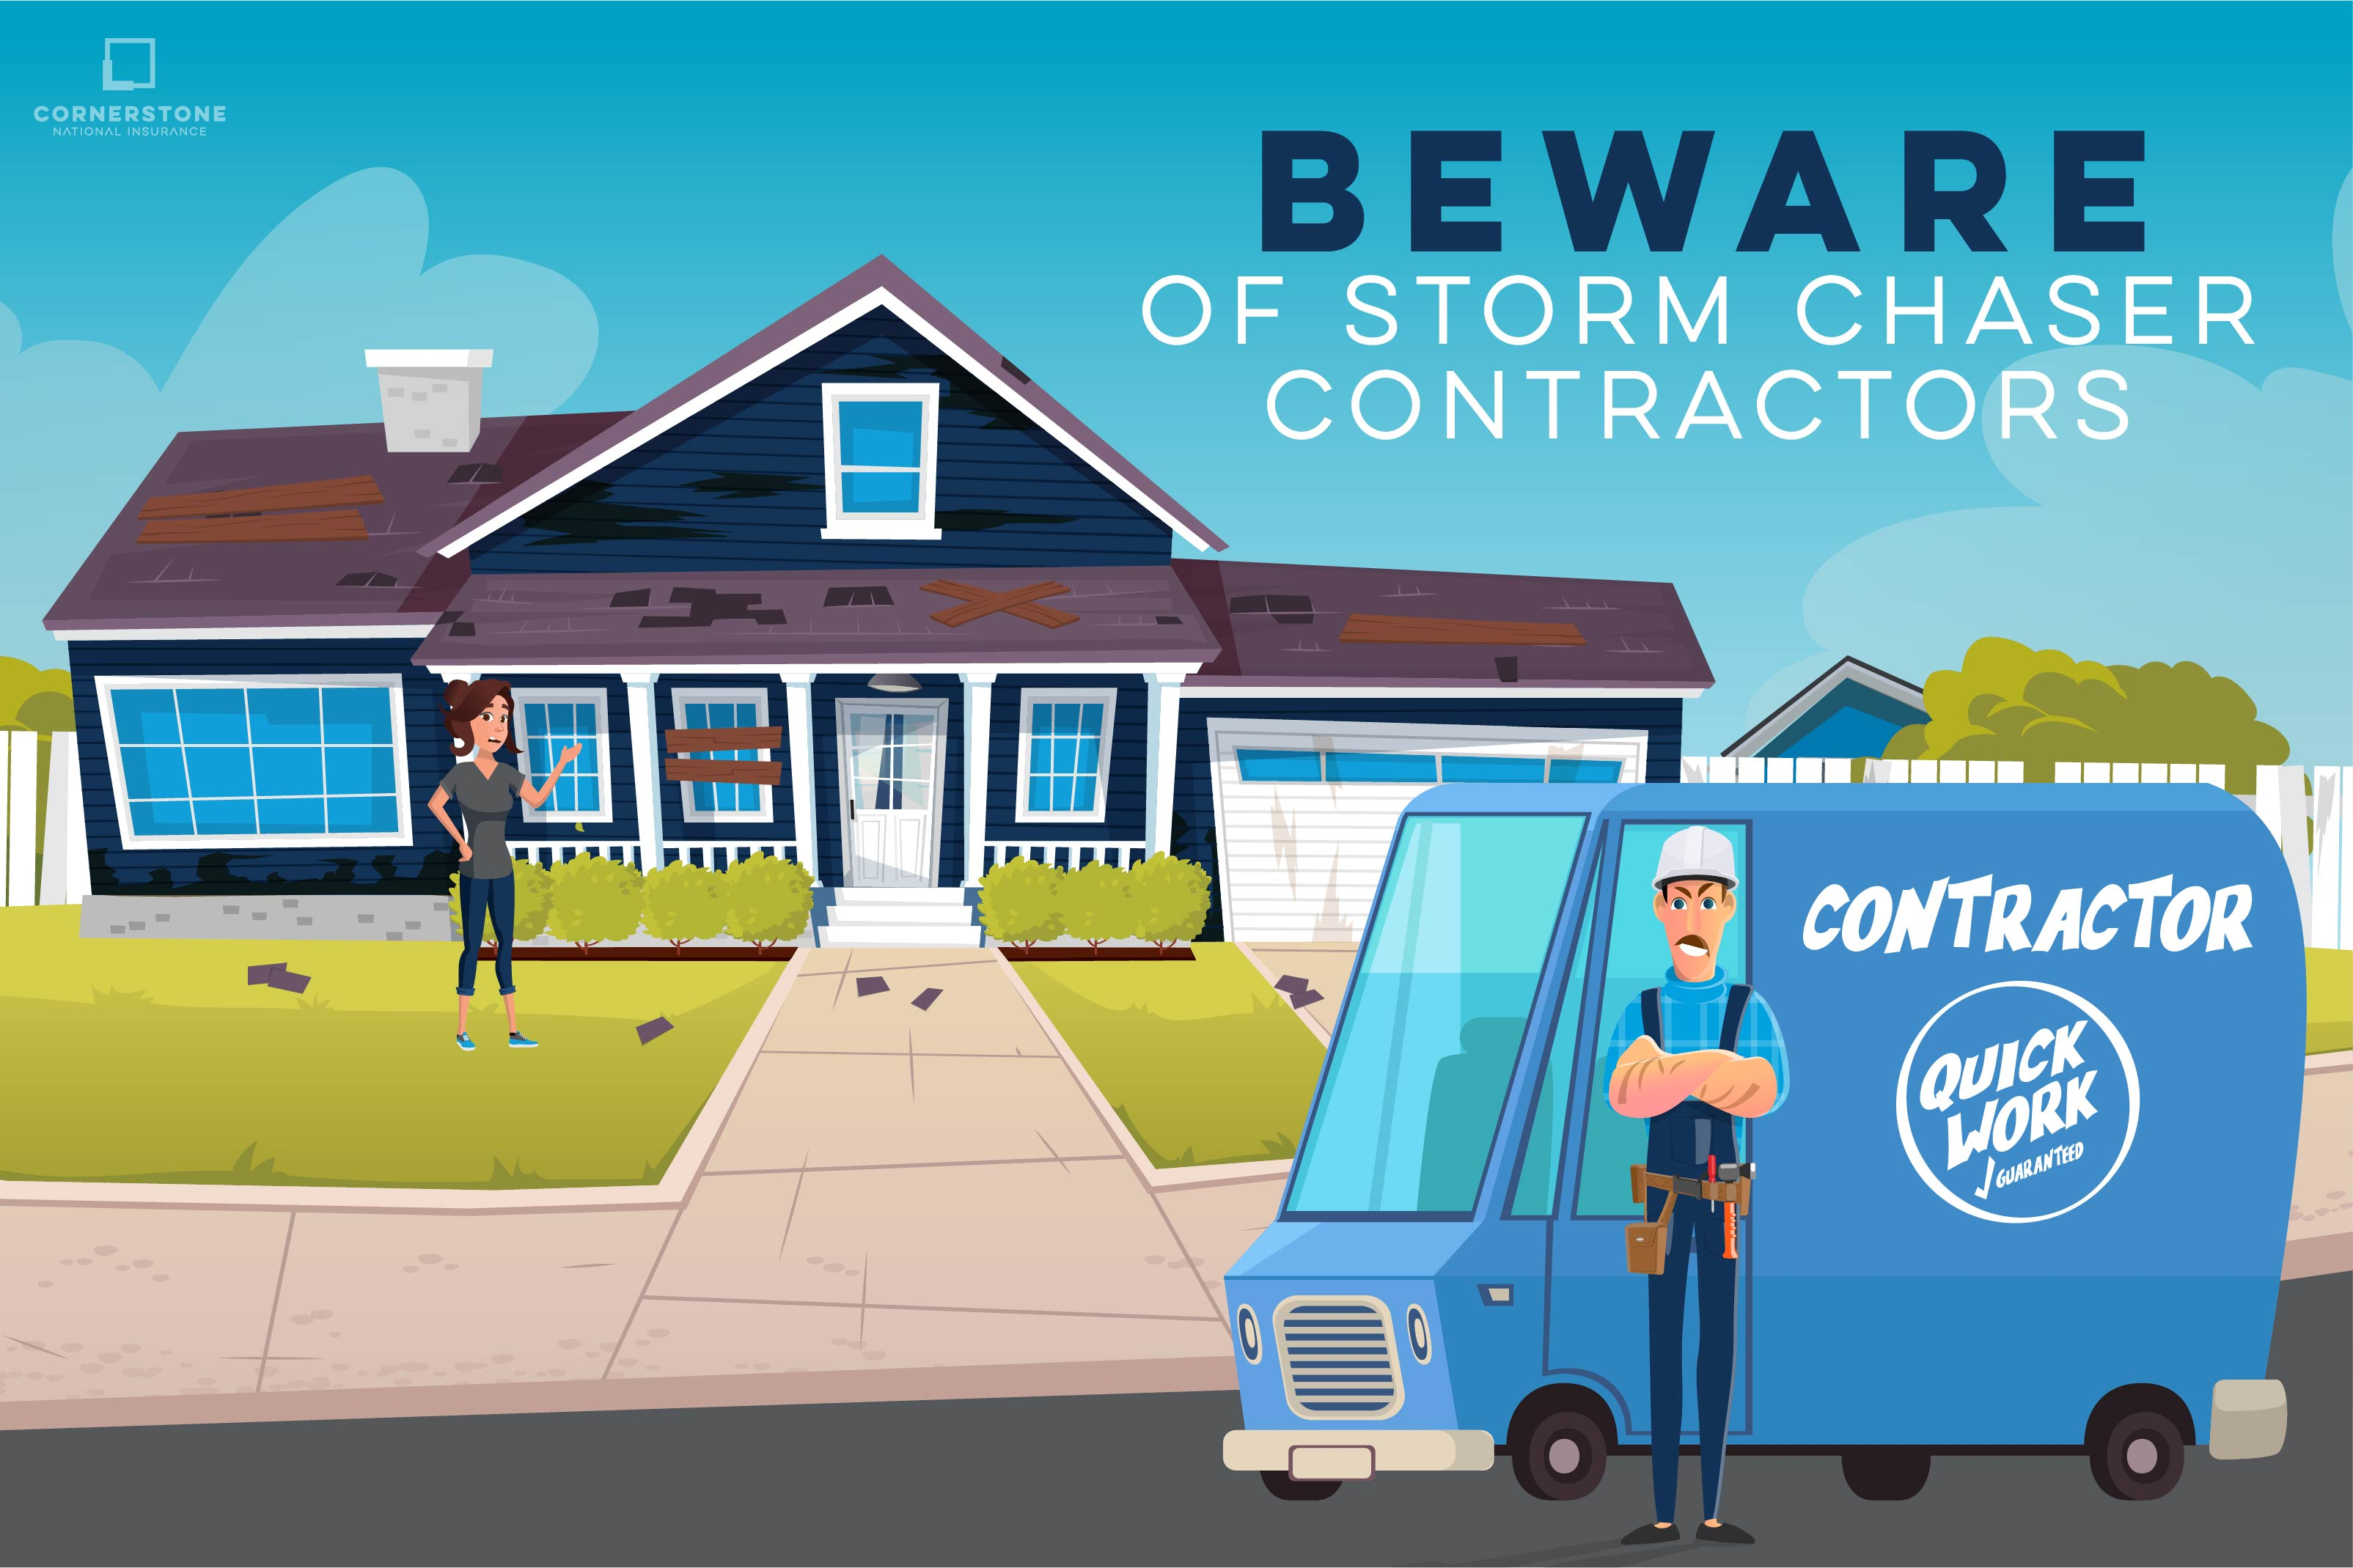 5. 50351_Beware Storm Chasers_Blog-01